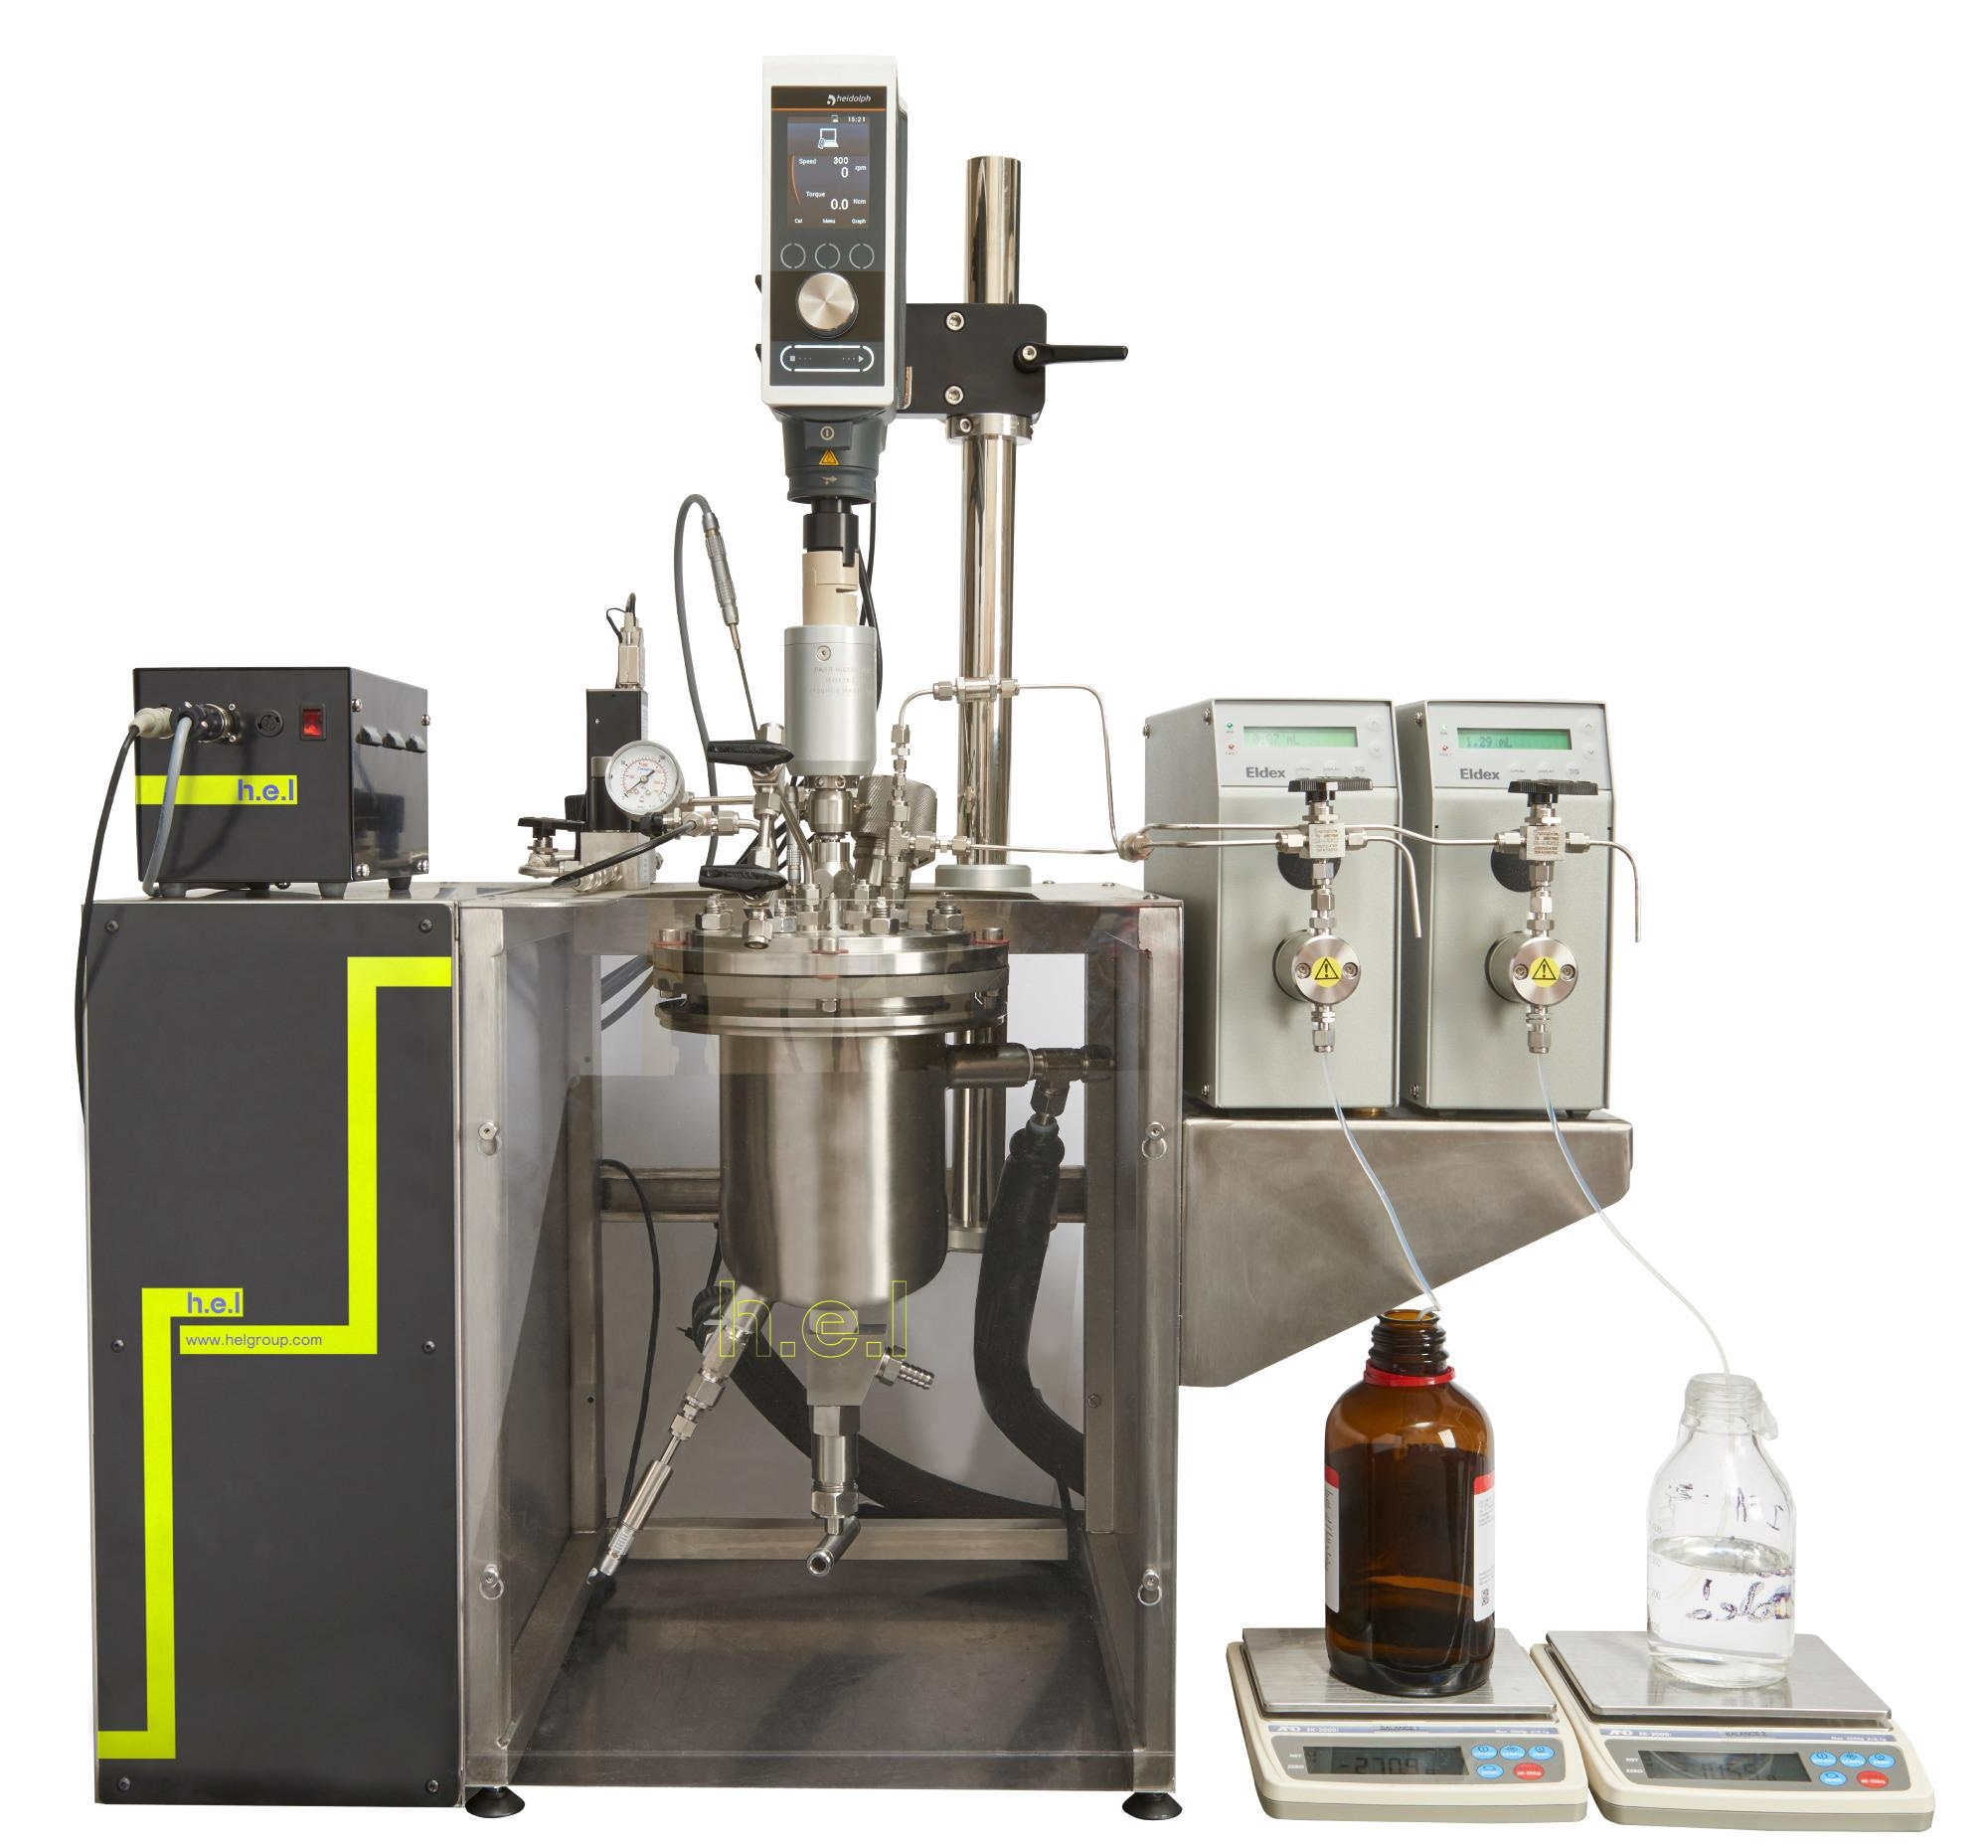 AutoLAB High Pressure: A High Pressure Automated Reactor System